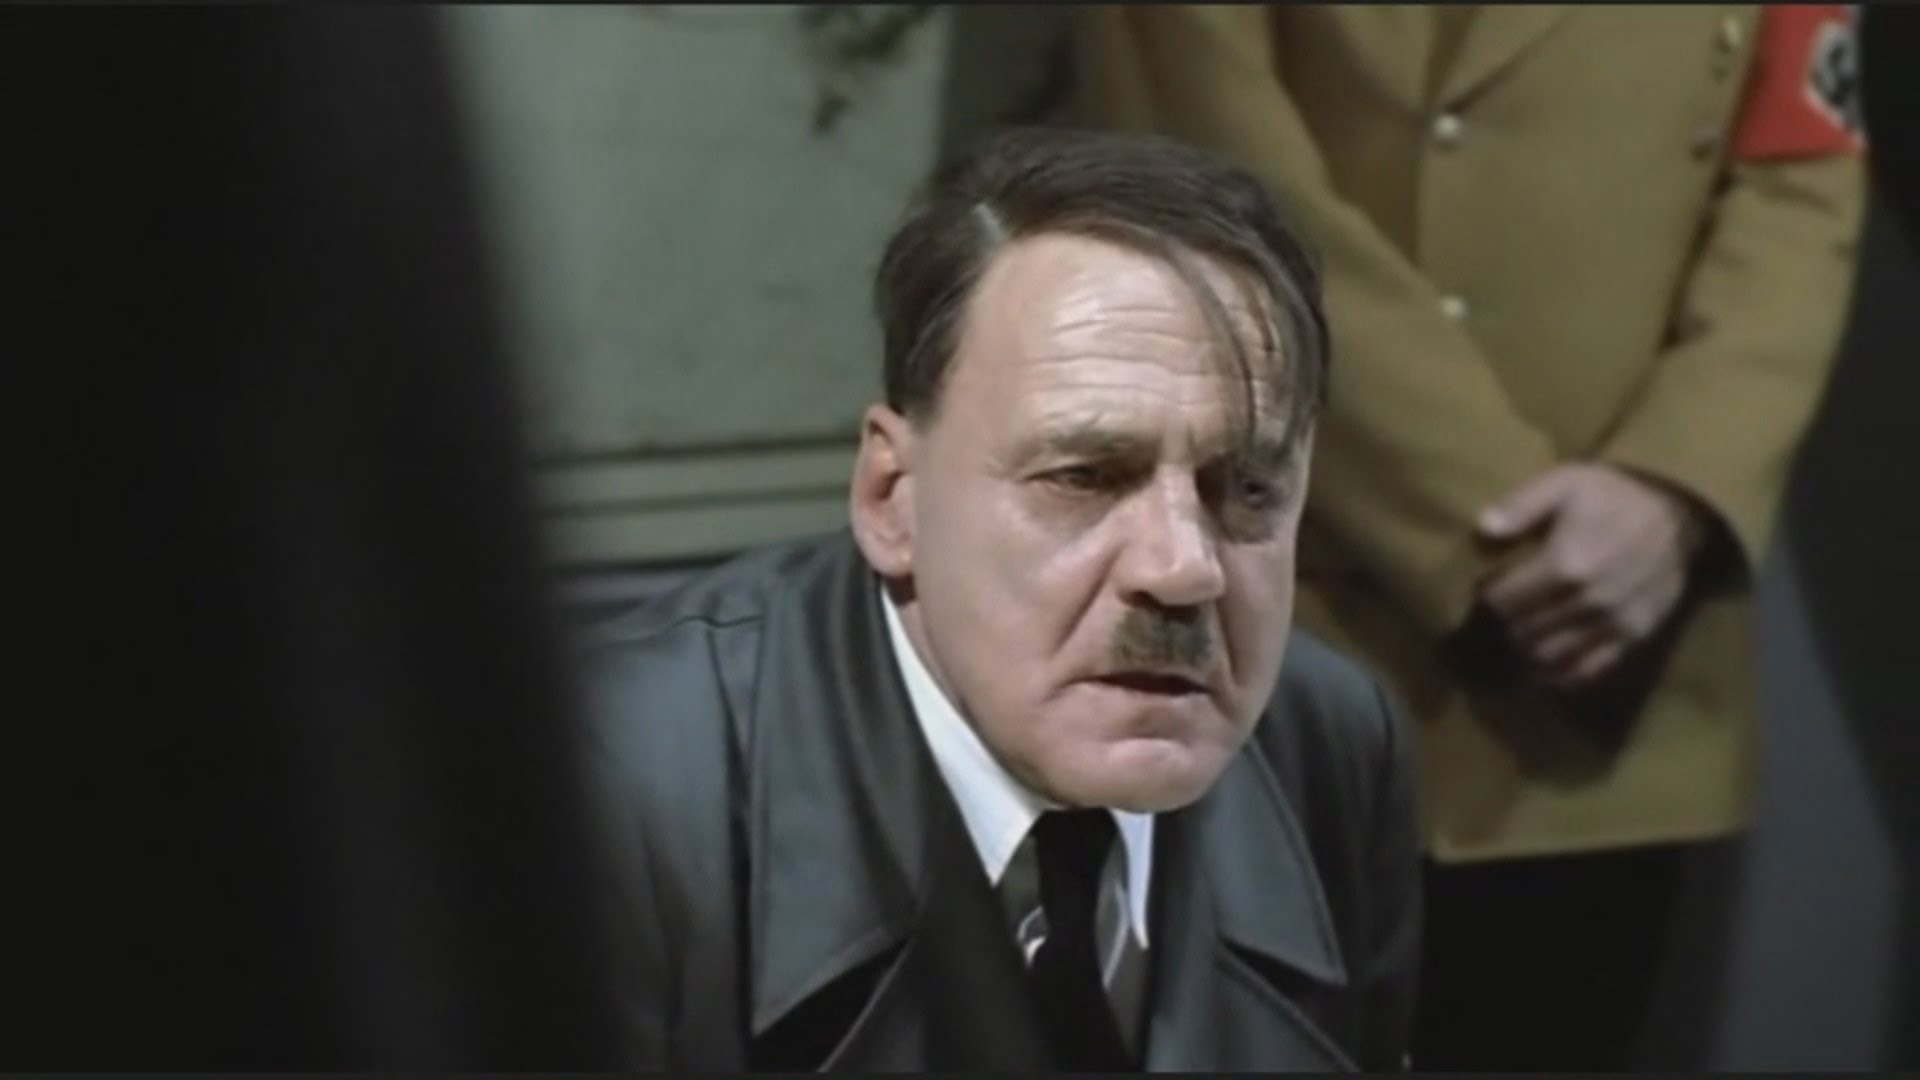 downfall 2004 full movie download in hindi